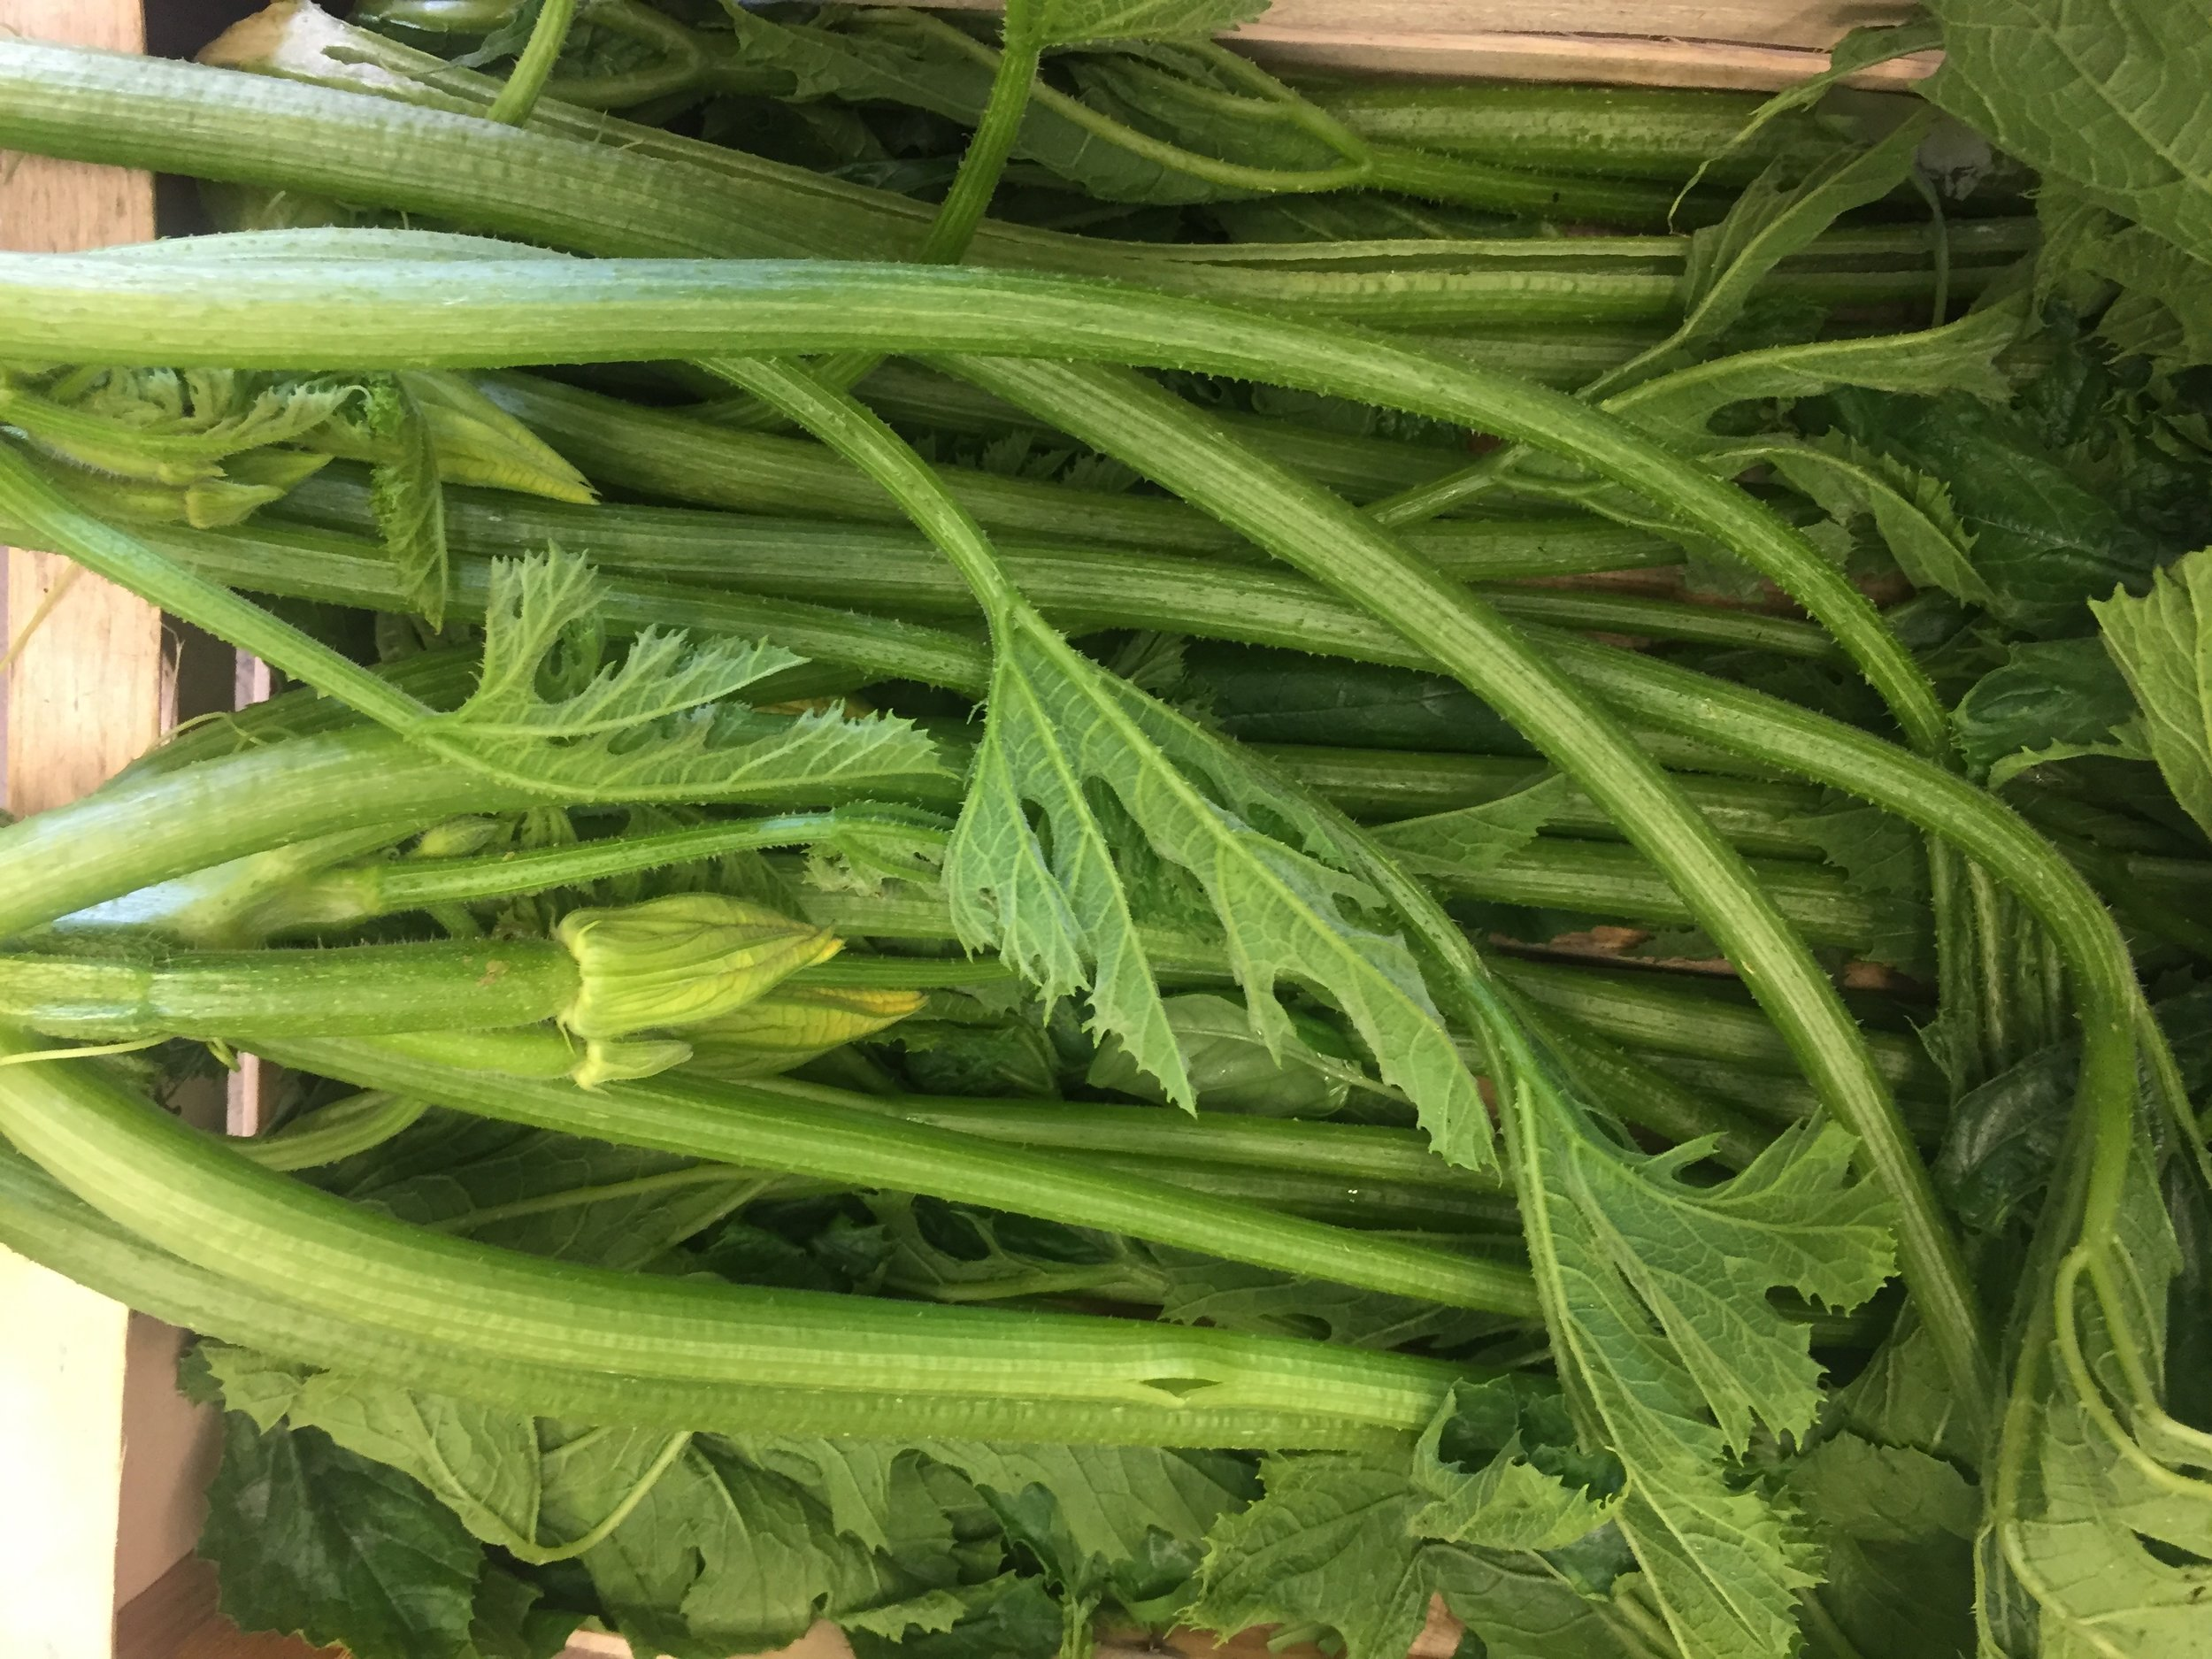 Tenerumi / Leaves of the Cucuzza Zucchini     Photo ©Puntarelle&Co Ltd   So, what new season produce can we  expect  to come through our doors through  JUNE ?  English  Broad Beans  and  Peas  and, perhaps, the first English  Fennel bulbs .  The  Asparagus  from our Kent grower will take us up to the last week of June with lower prices than in May.   Watercress  sourced direct from Kingfisher Farm in Surrey, who have been growing watercress for more than 150 years, should be with us throughout the month.    New Potatoes  from Jersey, France and Cornwall.  British  Strawberries ,  Raspberries    and  Gooseberries  will be benefiting from some summer sun in June.  English-grown  Herbs  –  Mint, Coriander, Parsley and Dill  in particular as well as  Cucumbers ,  Radishes ,  Spring Onions  and  Spinach .  Crunchy French  Grelot Onions  will continue through the month and we will have a good supply of  Round ,  Romana ,  Trompetta ,  White ,  Yellow  and  Green   Courgettes  and  Tenerumi  (leaves of the Cucuzza Zucchini) from Italy.  There will be  Borlotti Beans  and a greater variety of  Aubergines  this month.    Even sweeter varieties of sun-ripened Italian  Tomatoes .  The supply of flat, pink  Cipollini Onions  for roasting should continue as should quality new season  Garlic  and crunchy  Kohlrabi .    We should continue to have small red/yellow  Watermelons ,  Cantaloupe Melons  and new season  Sicilian Green Lemons , prized in particular for their highly fragrant zest.   Peaches ,  Flat Peaches ,  Nectarines, Apricots  and  Green Figs  from Italy.  We expect both Red and Rainier  Cherries  from France as well as  White  and  Blood  varieties of both  Peaches  and  Nectarines   (pêche de vigne & nectavigne) .     Plums  from France and Italy should be arriving and Green Almonds are now in season.    By late June we should have  English Cherries  arriving.